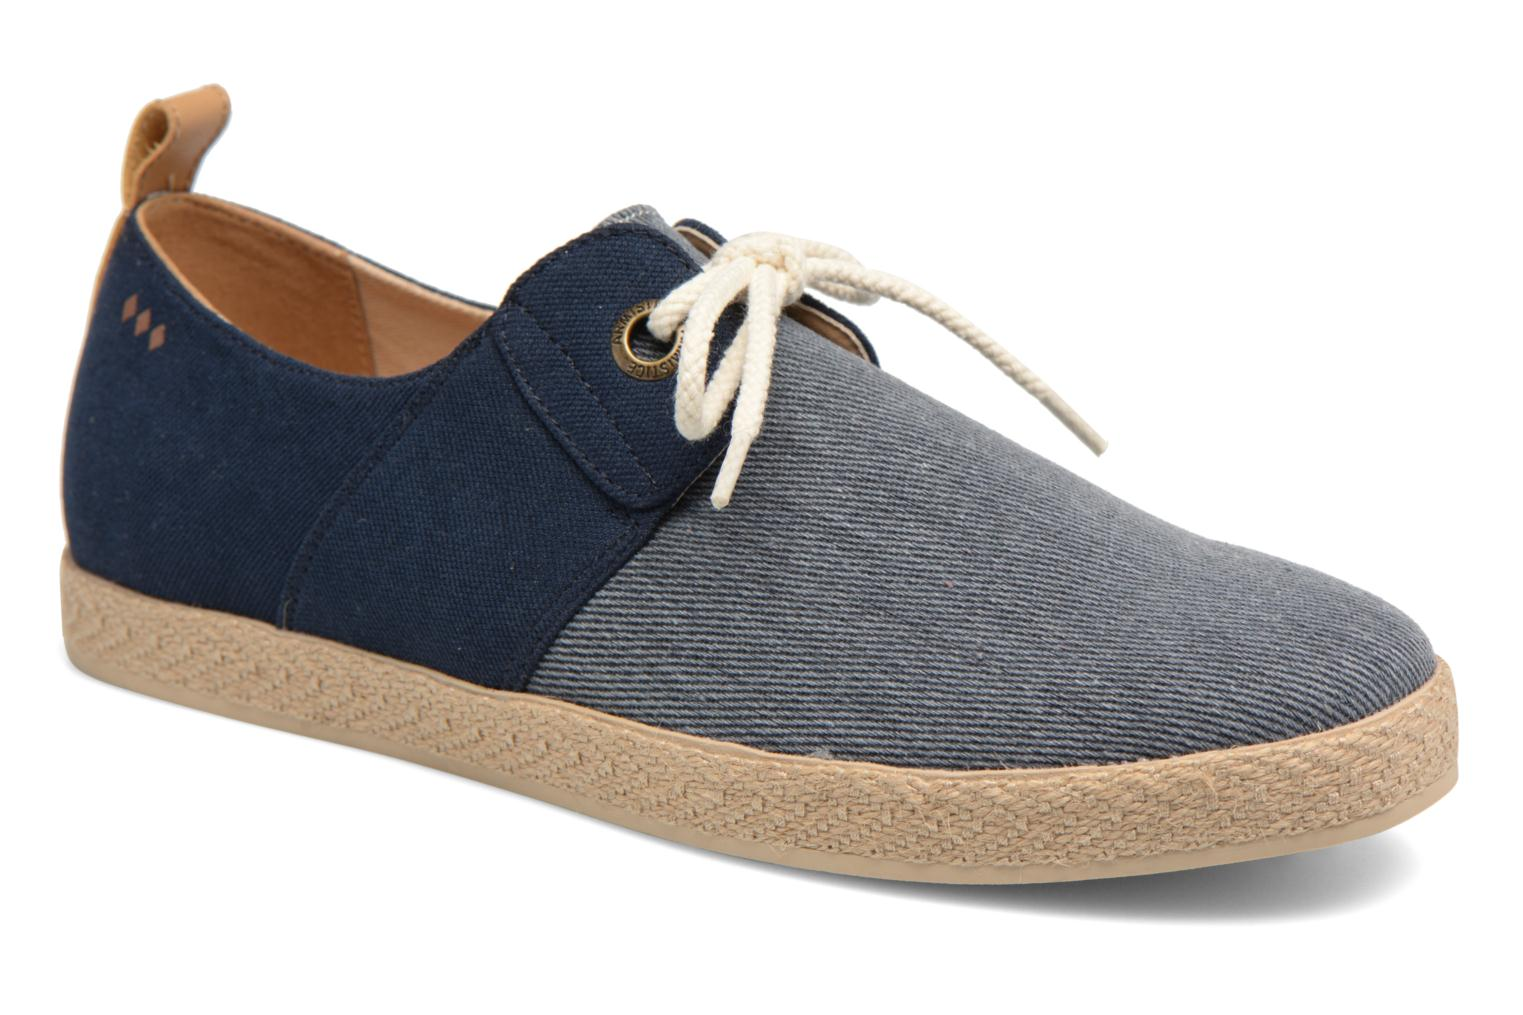 Marques Chaussure homme Armistice homme Cargo One FadedWood M Blue Marine